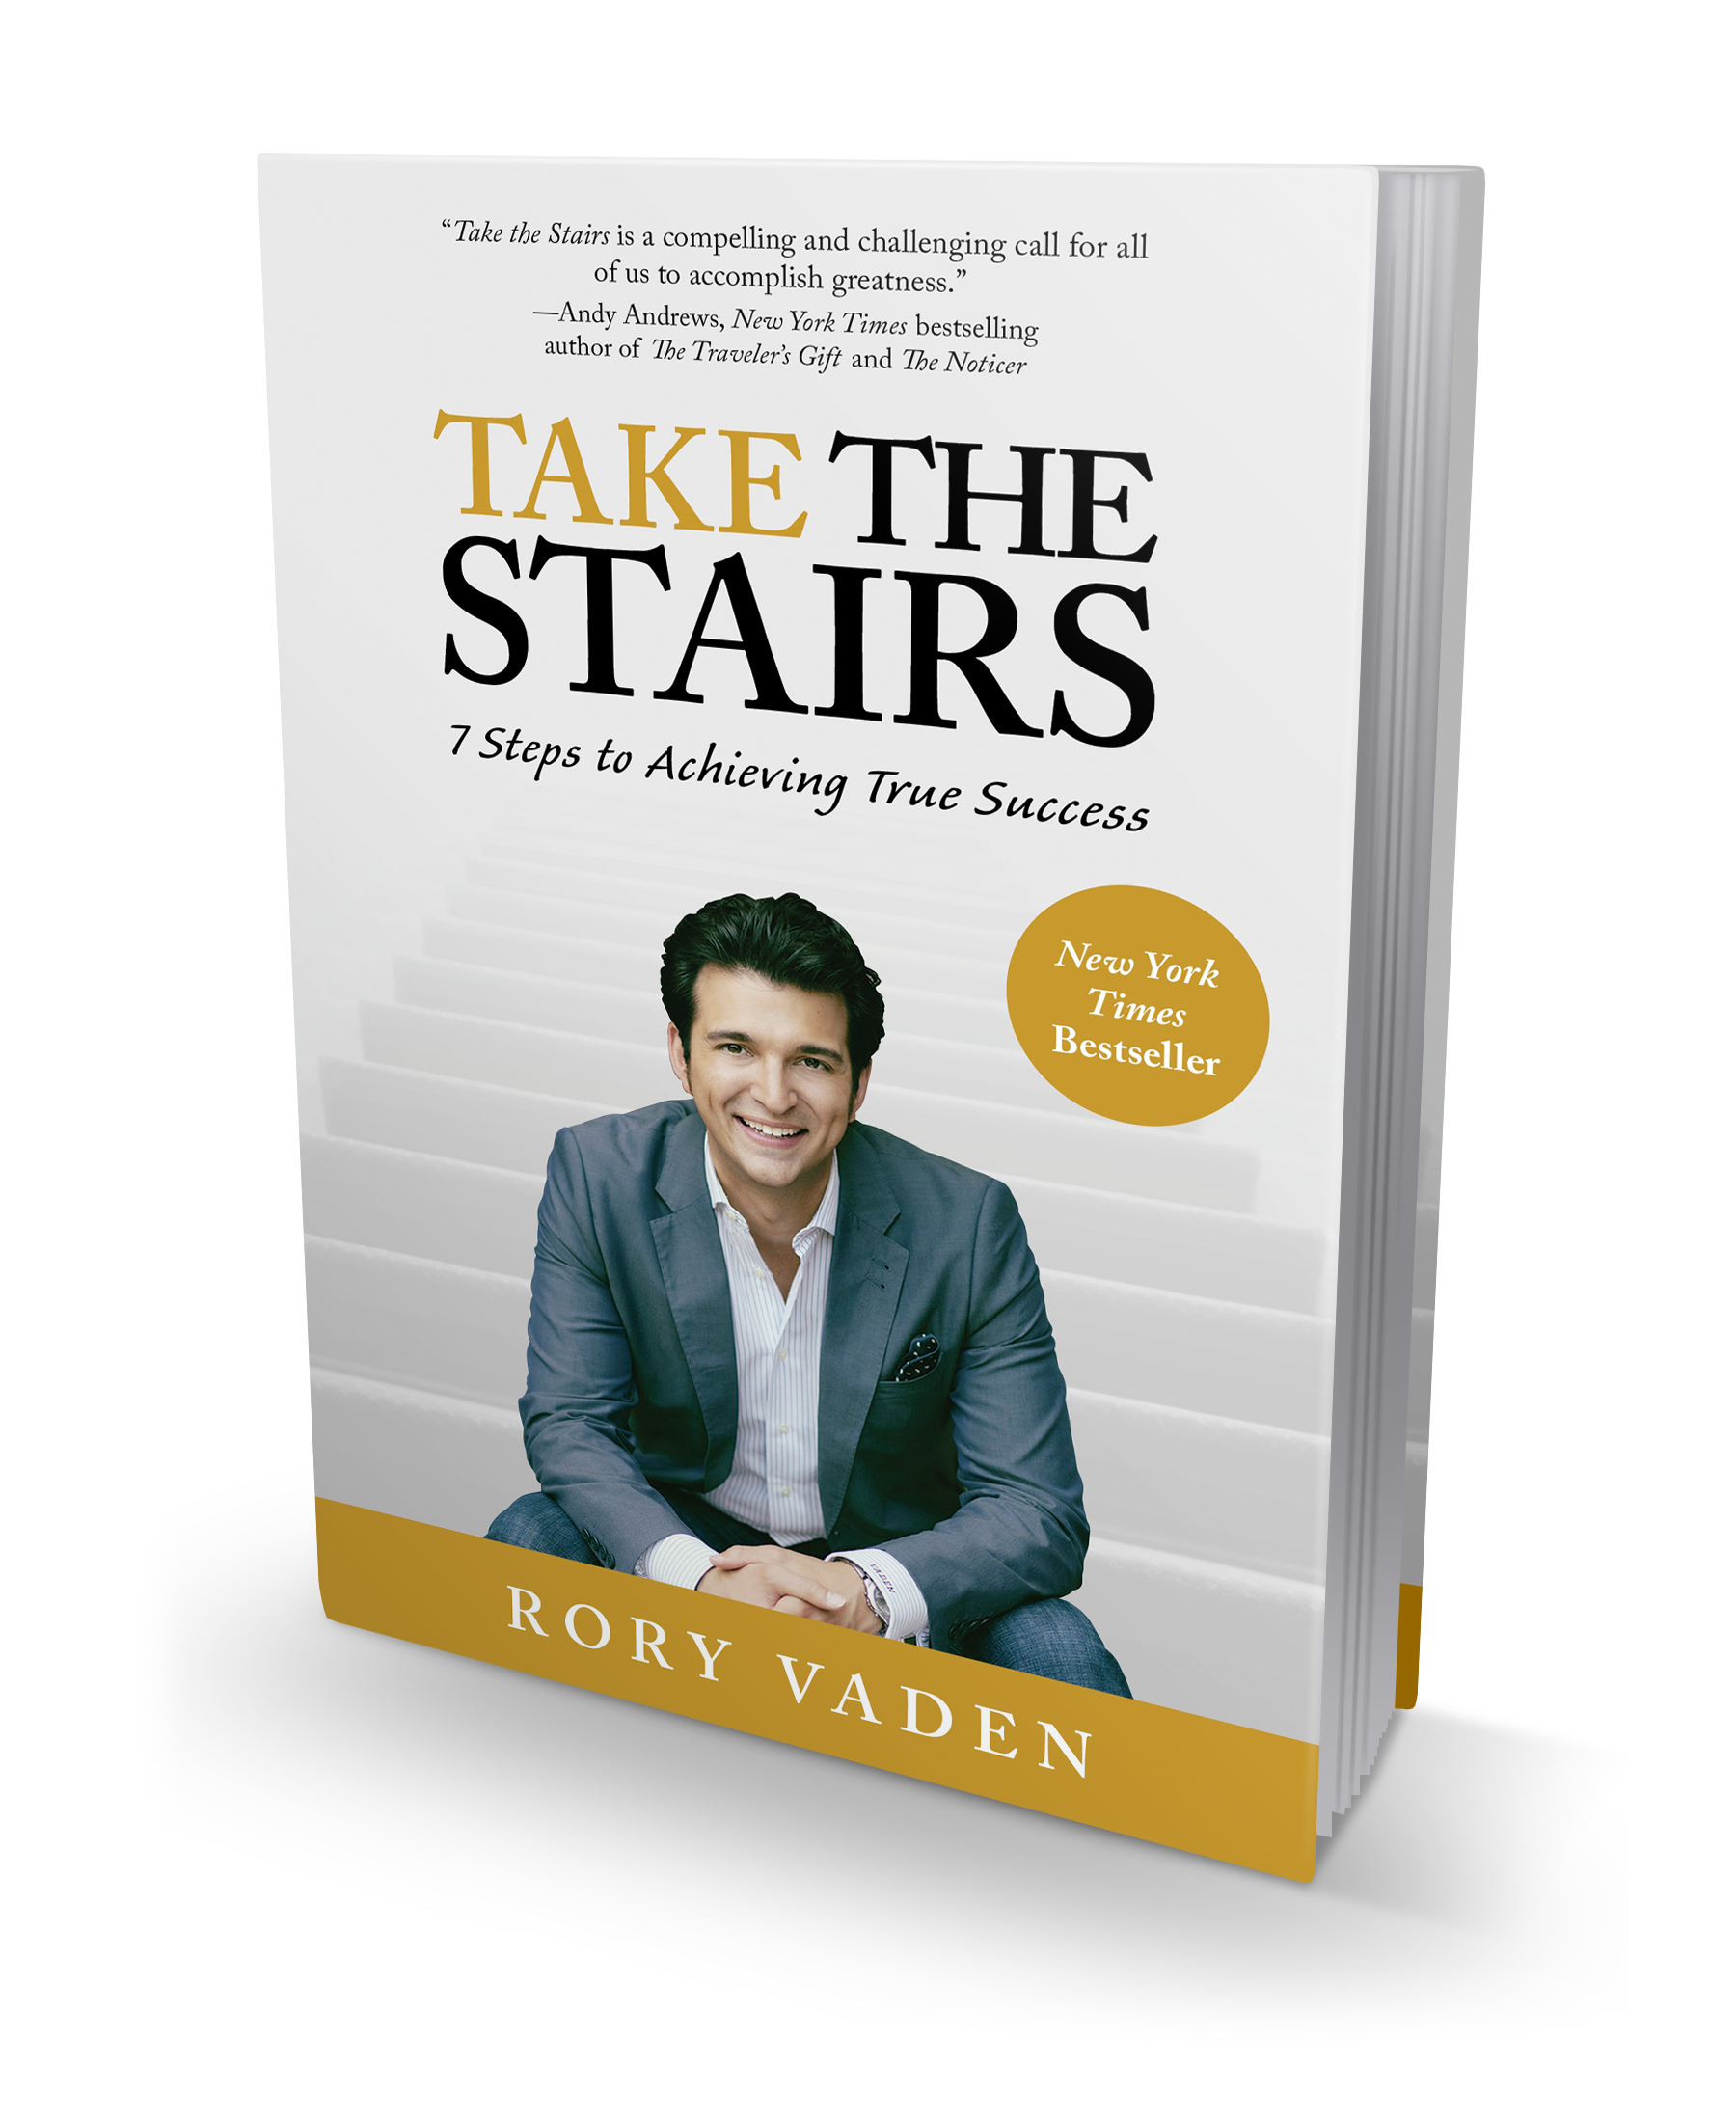 Take the Stairs book cover